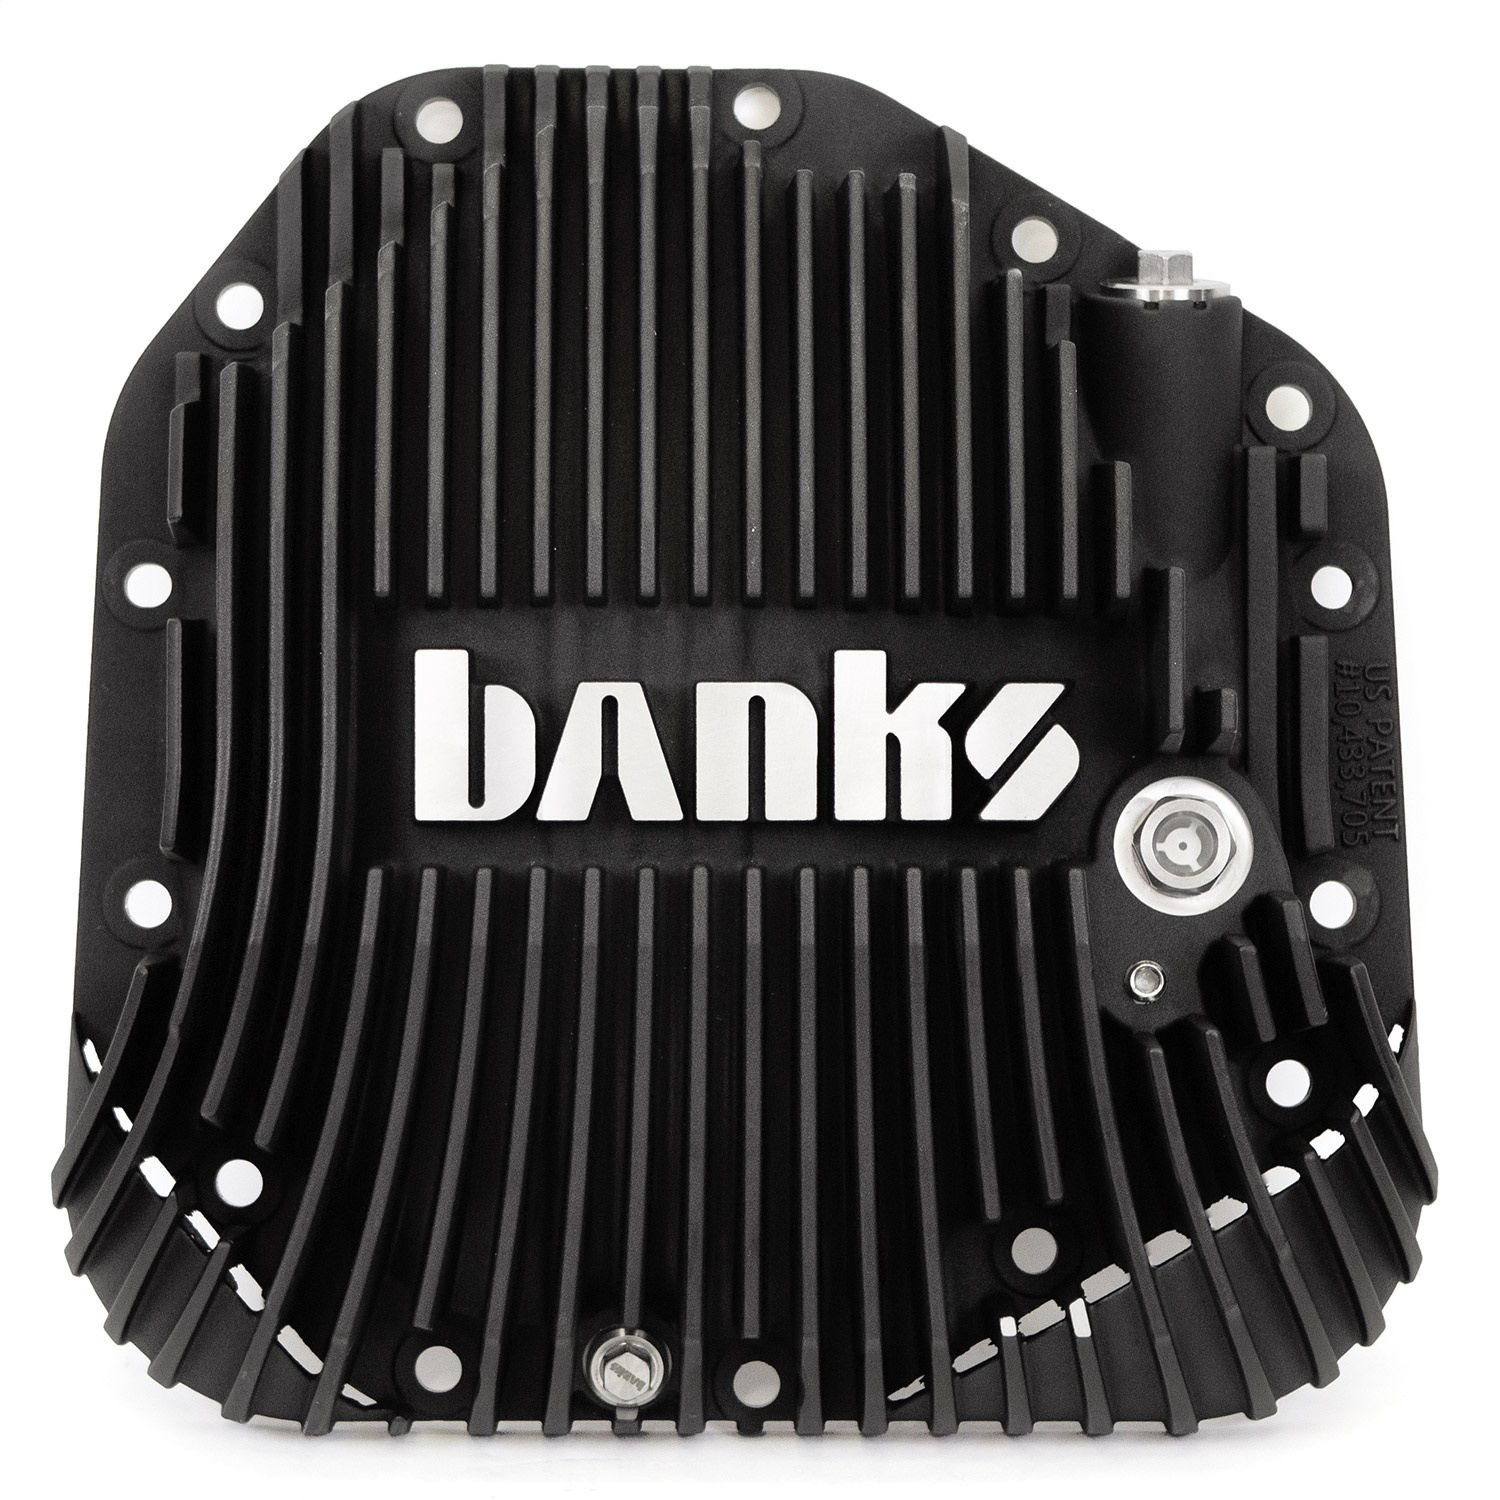 Banks Power 19282 Ram-Air Differential Cover Kit